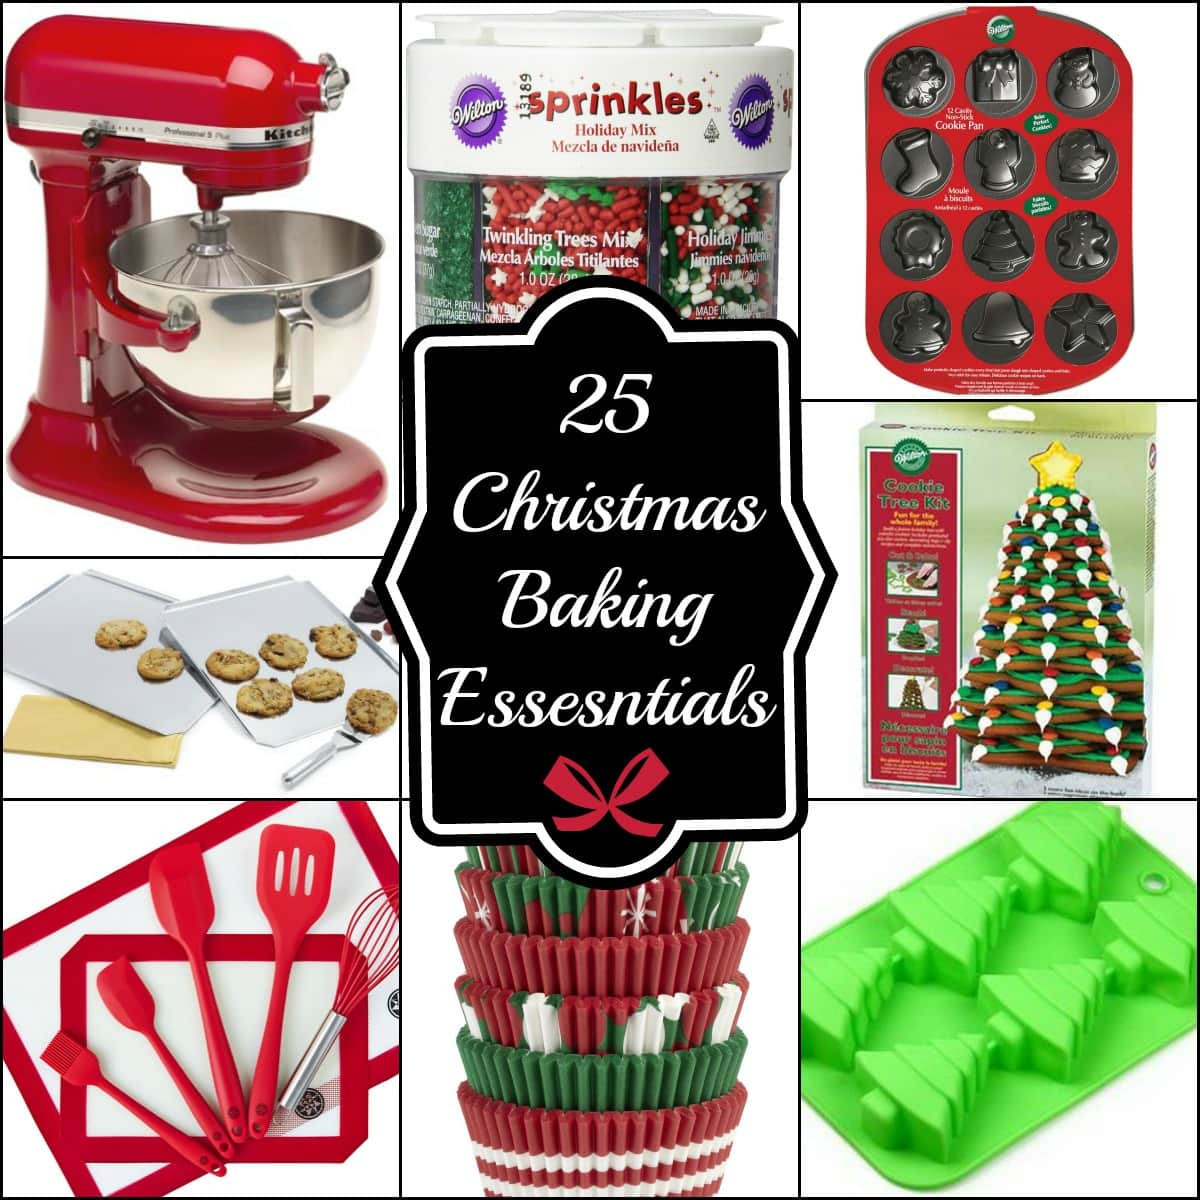 Christmas Baking Gift Ideas  25 Christmas Baking Essentials and Baking Gift Ideas